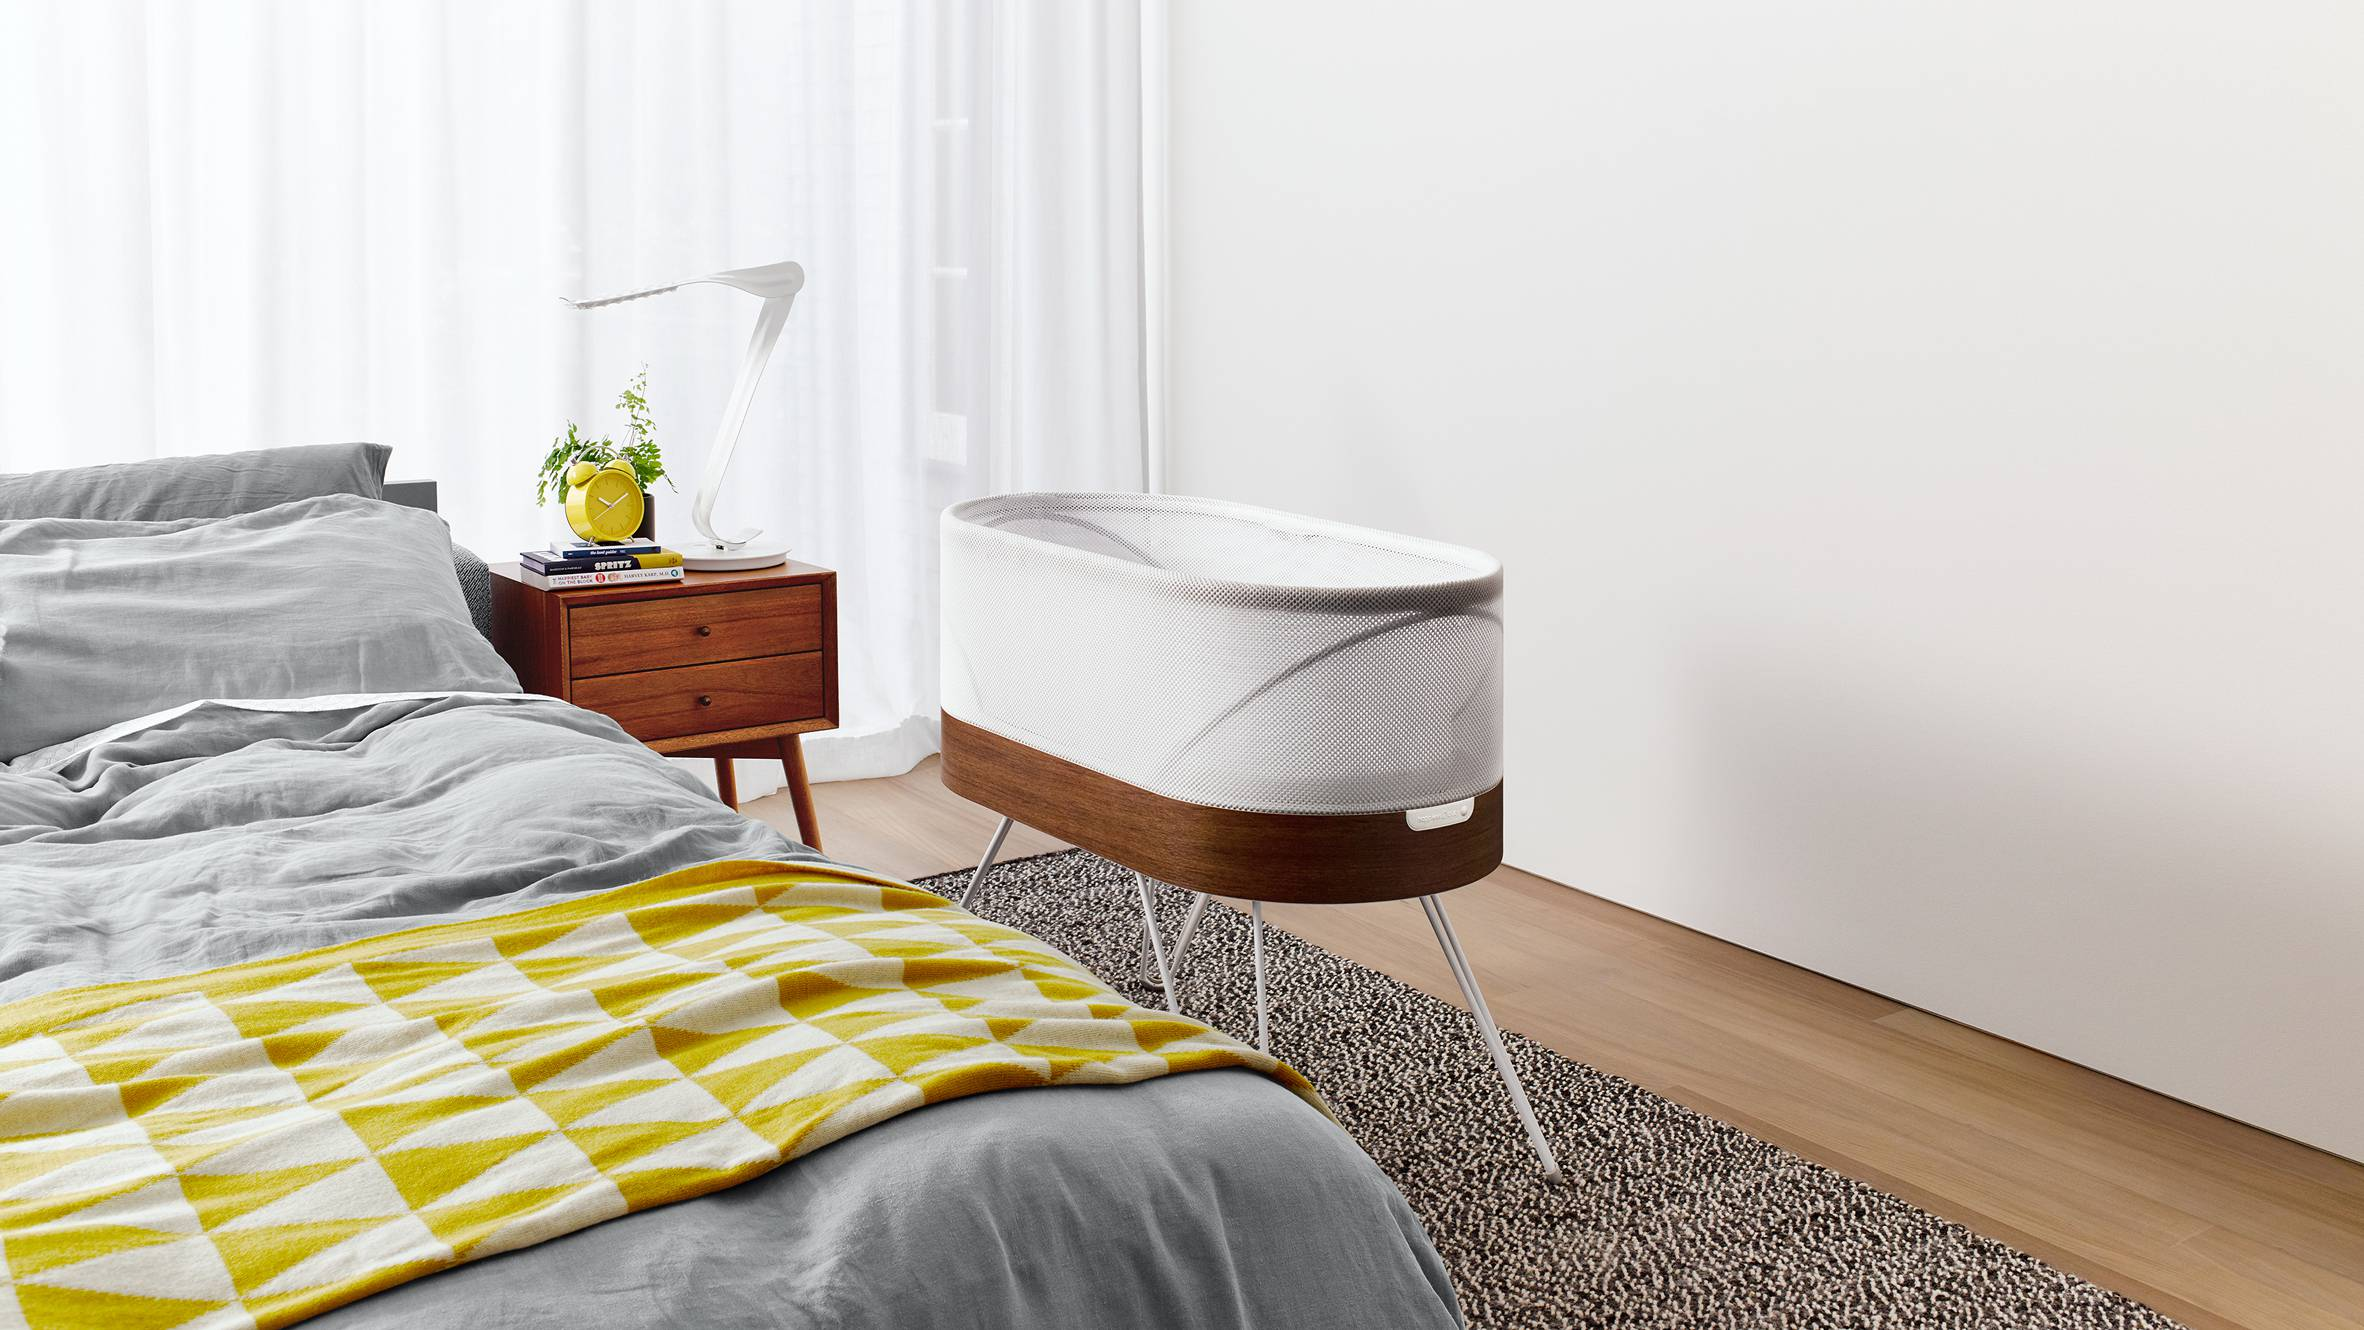 robotic-crib-for-happiest-baby-yves-behar-designs-childrens-furniture_dezeen_hero02